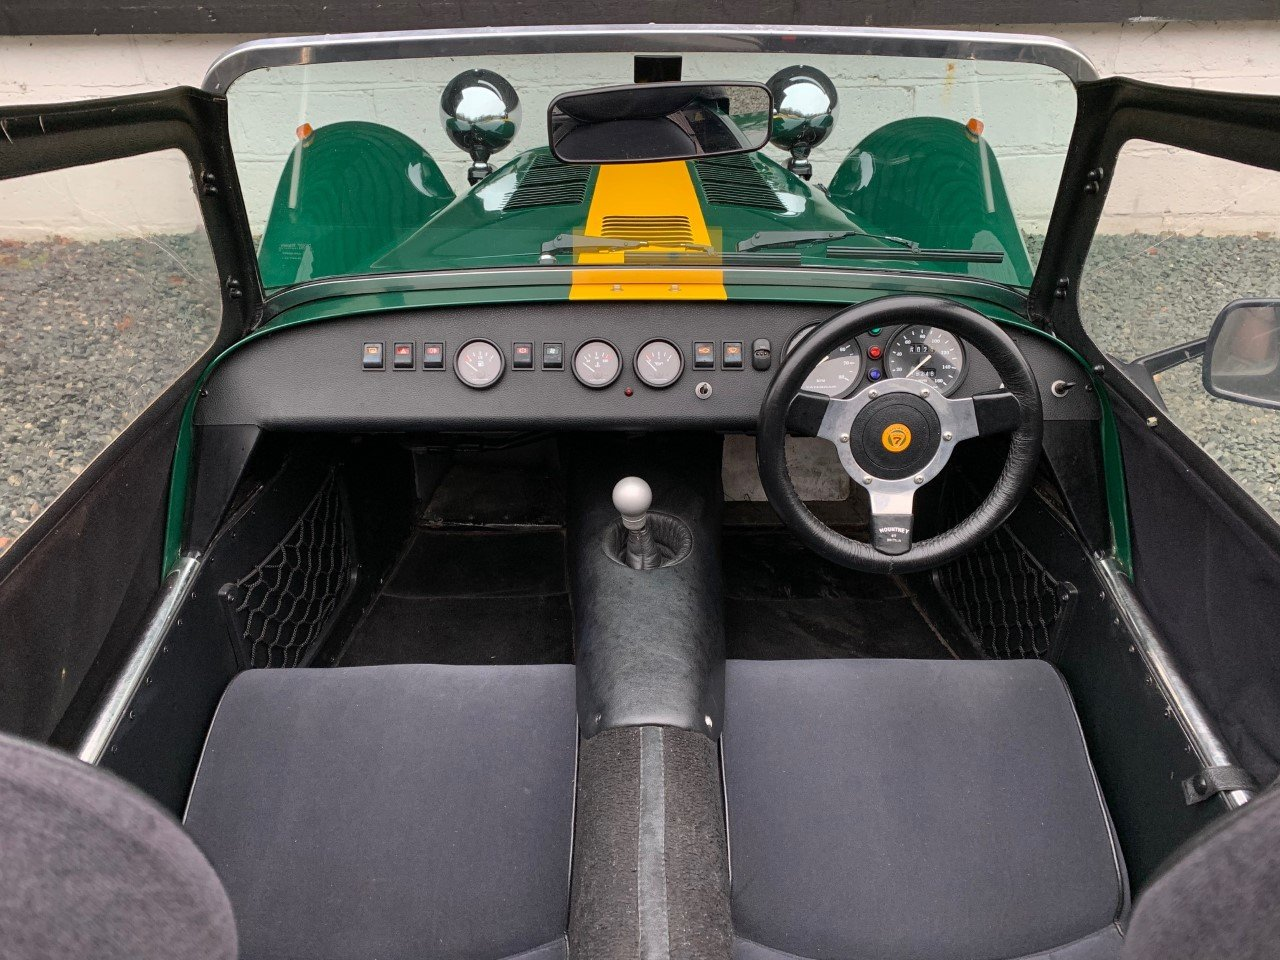 1998 Caterham Classic 1.6 VX Vauxhall 100bhp 5 speed For Sale (picture 6 of 6)